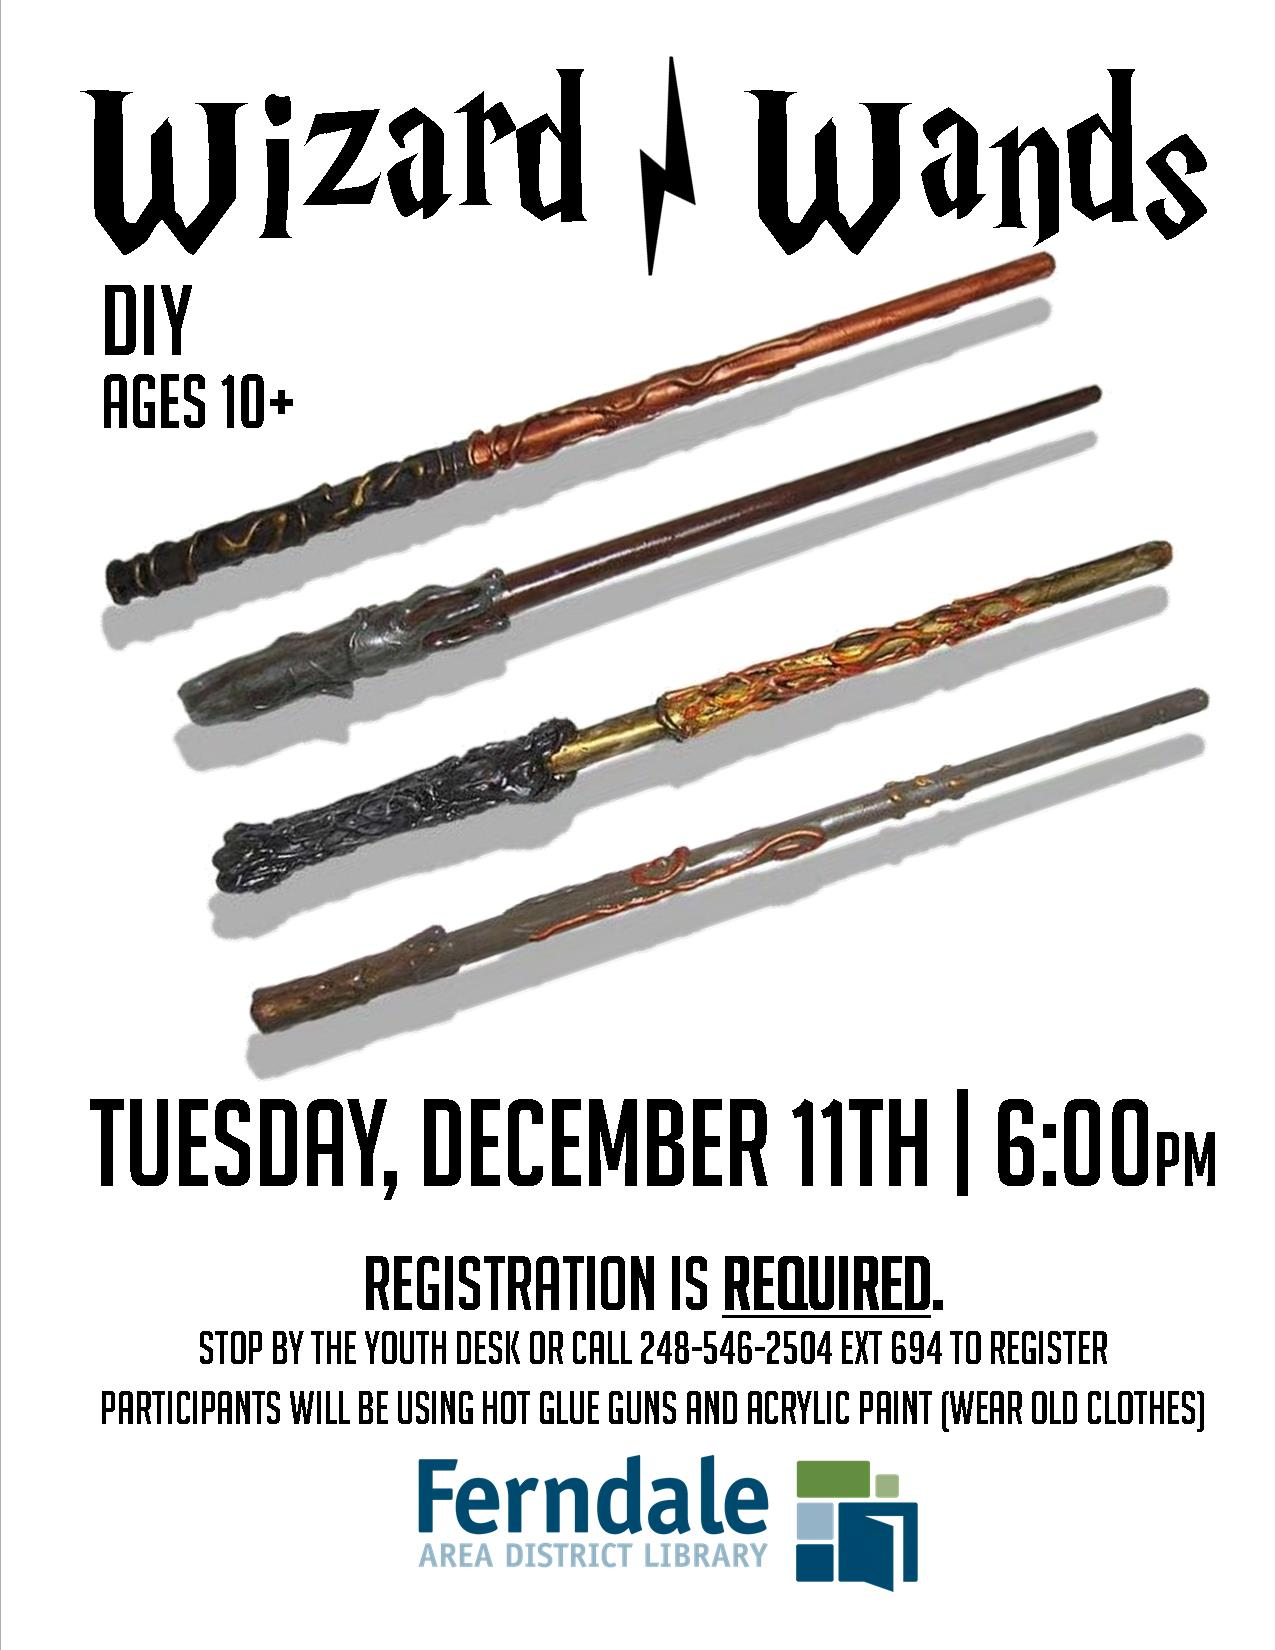 DIY Wizard Wands (Registration Required)